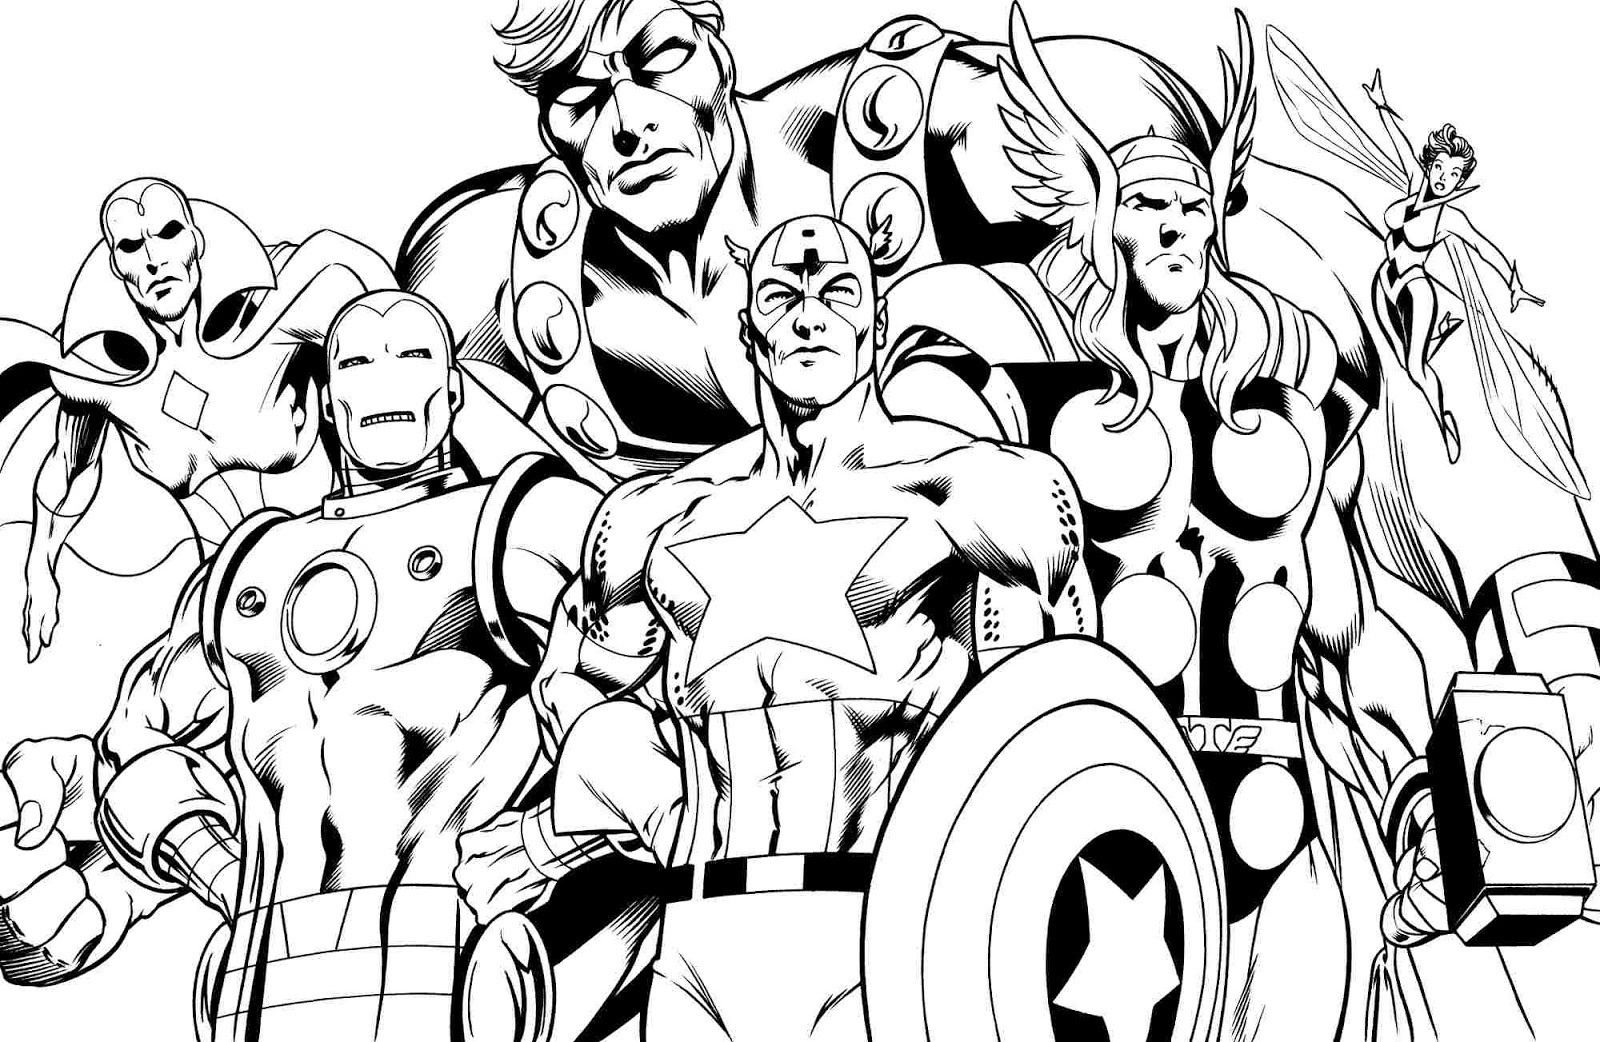 avengers ultron coloring pages ultron coloring page at getdrawings free download coloring ultron pages avengers